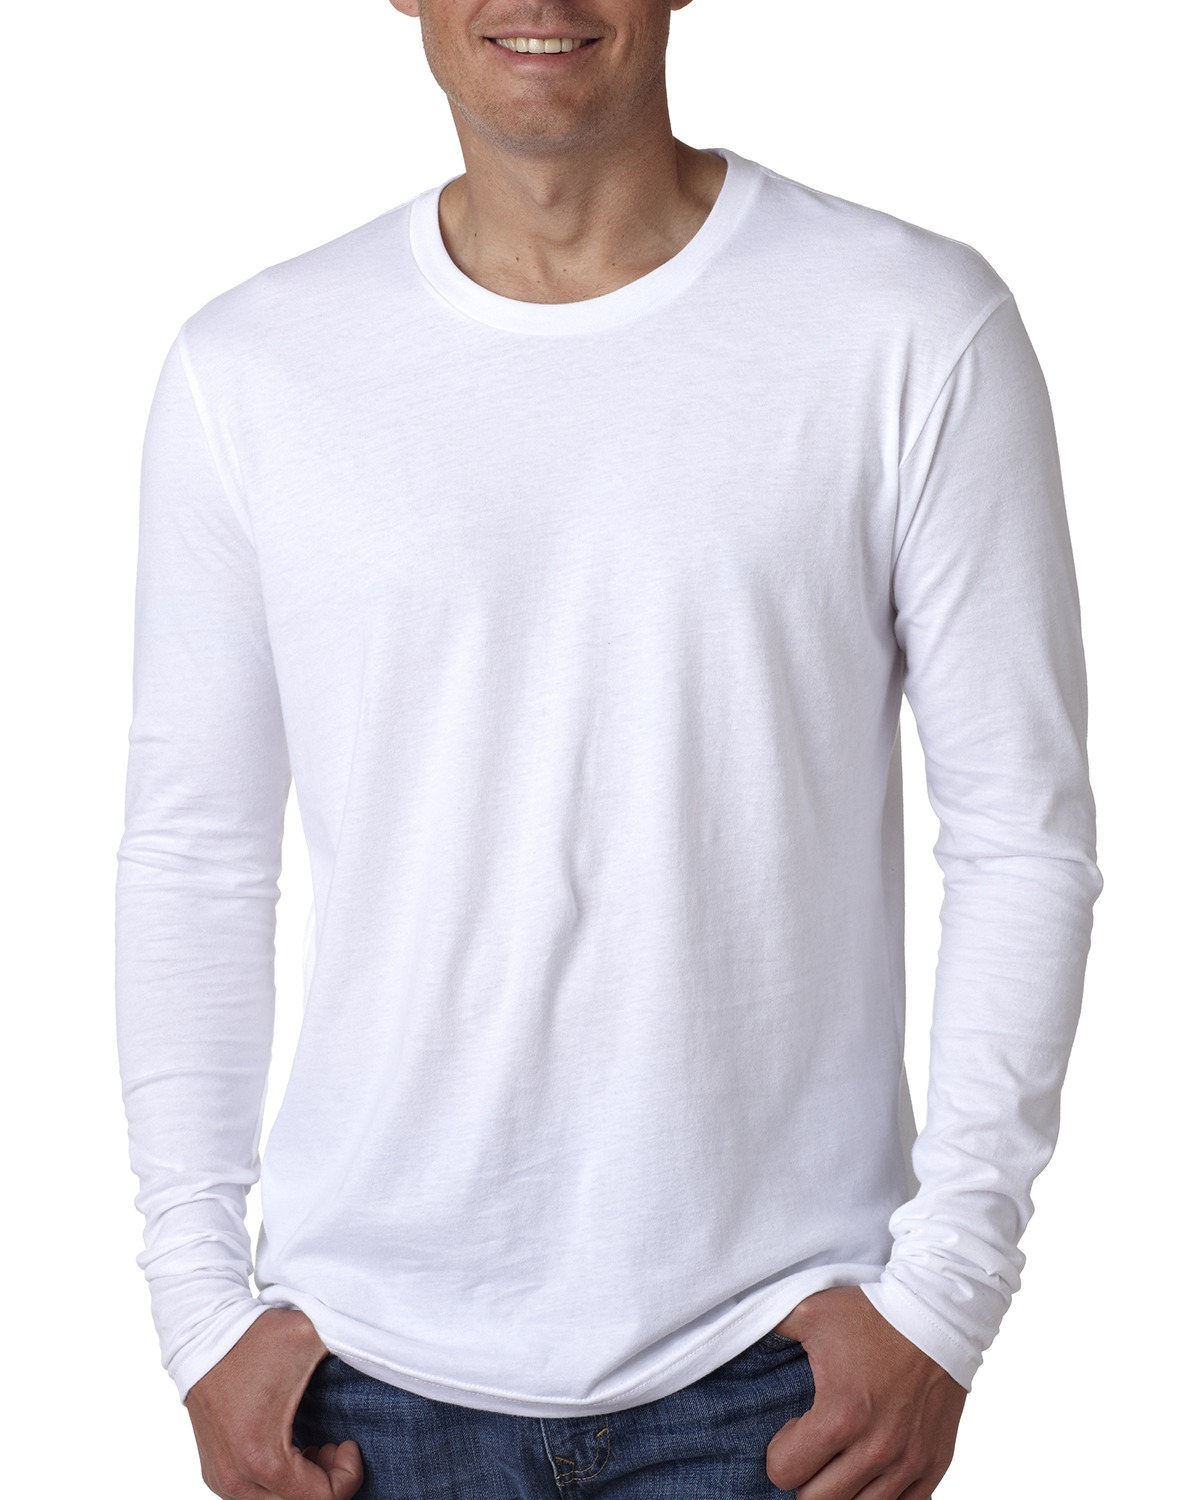 Men's Cotton Long-Sleeve Crew